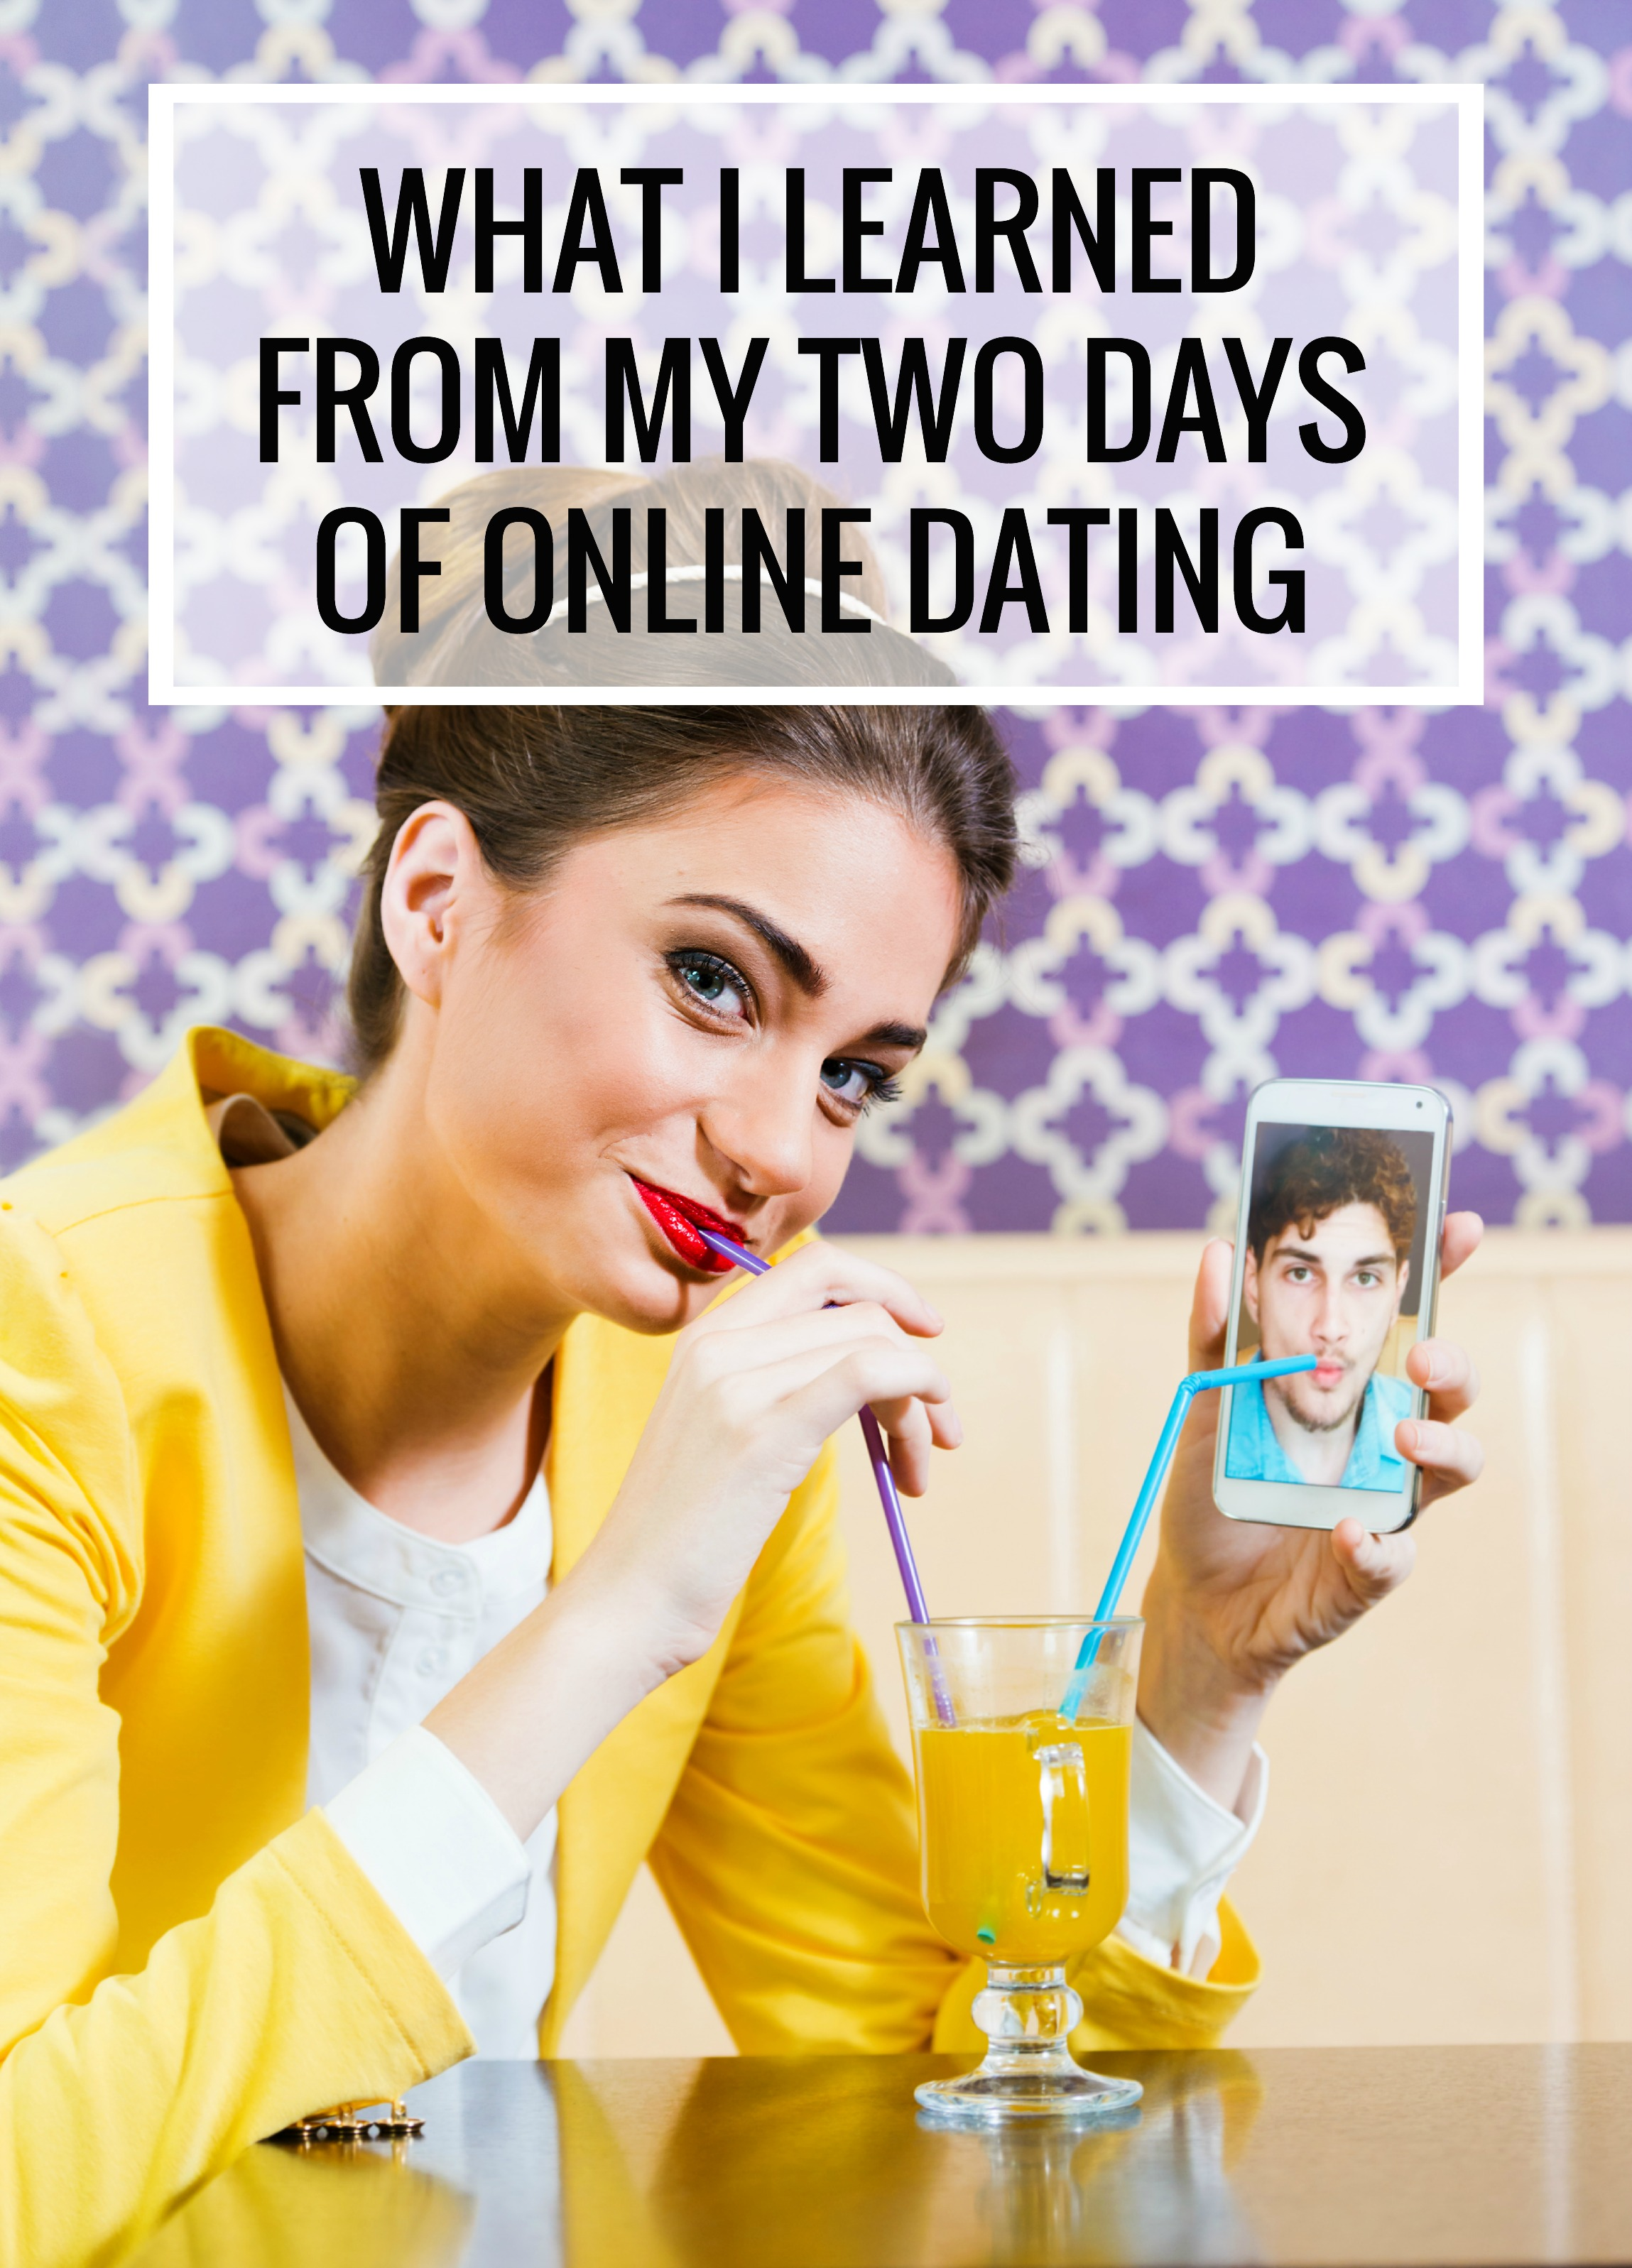 Should Christians try online dating